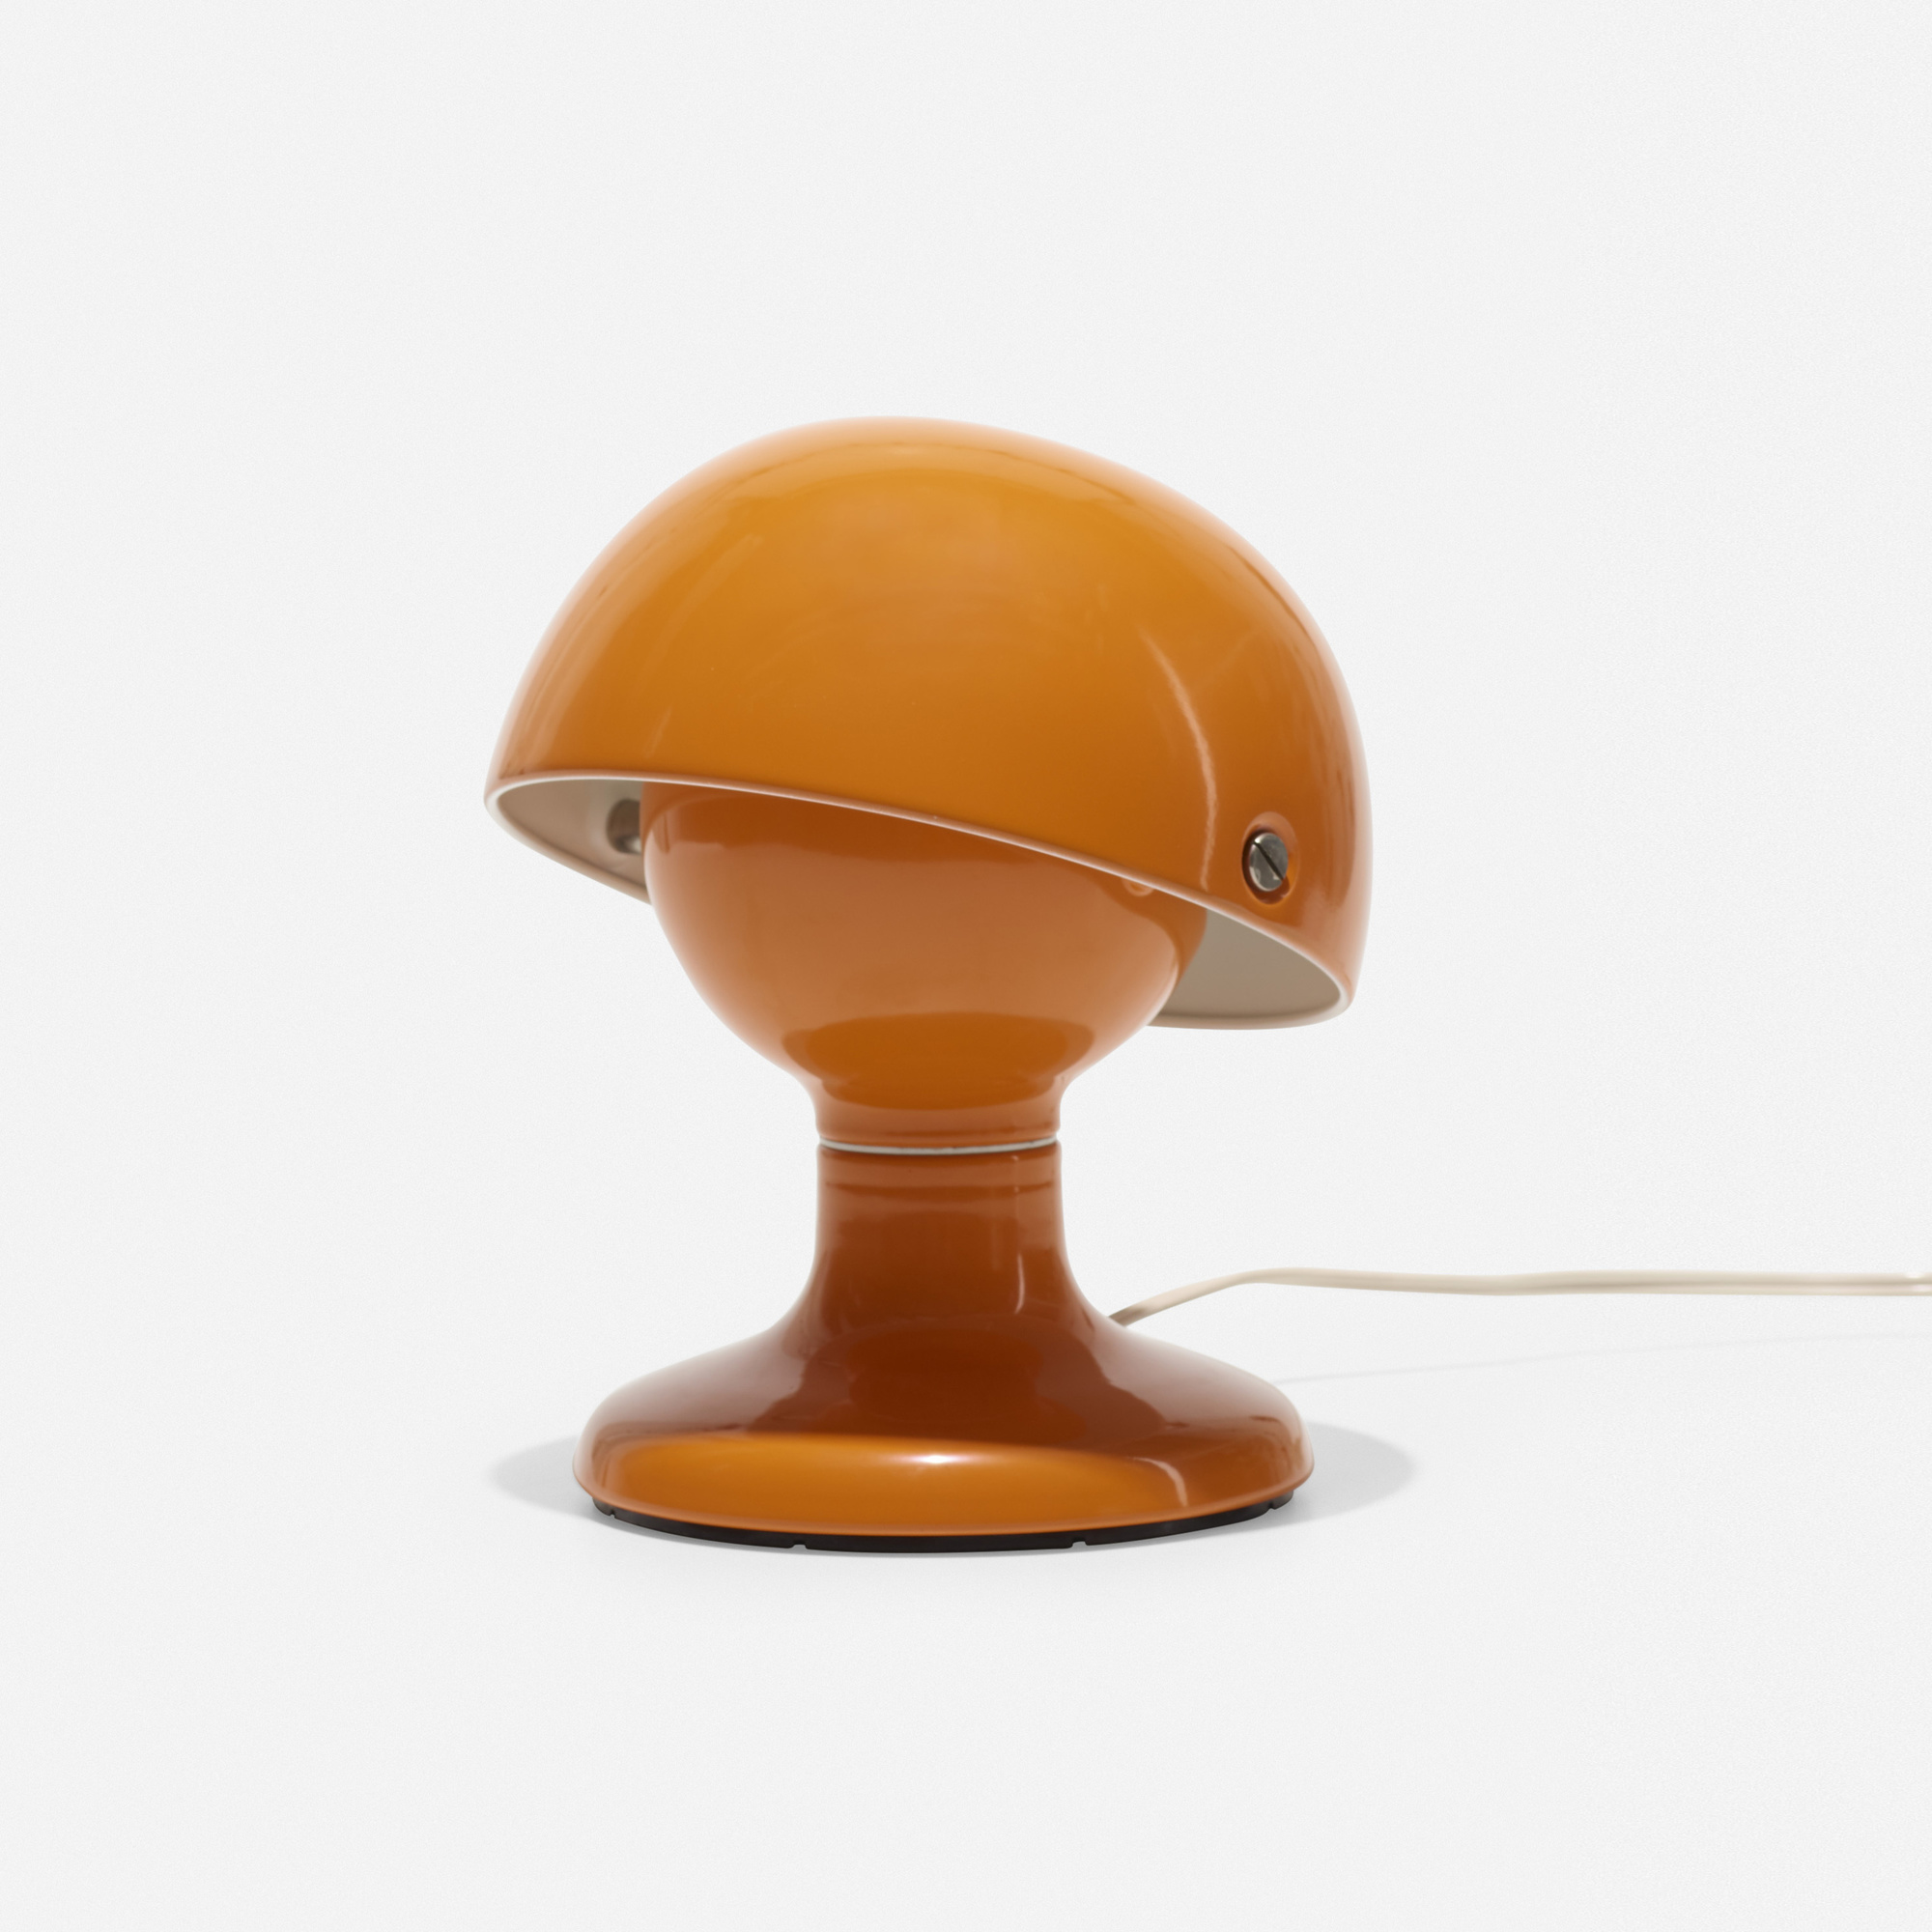 326: Afra and Tobia Scarpa / Jucker table lamp (1 of 3)